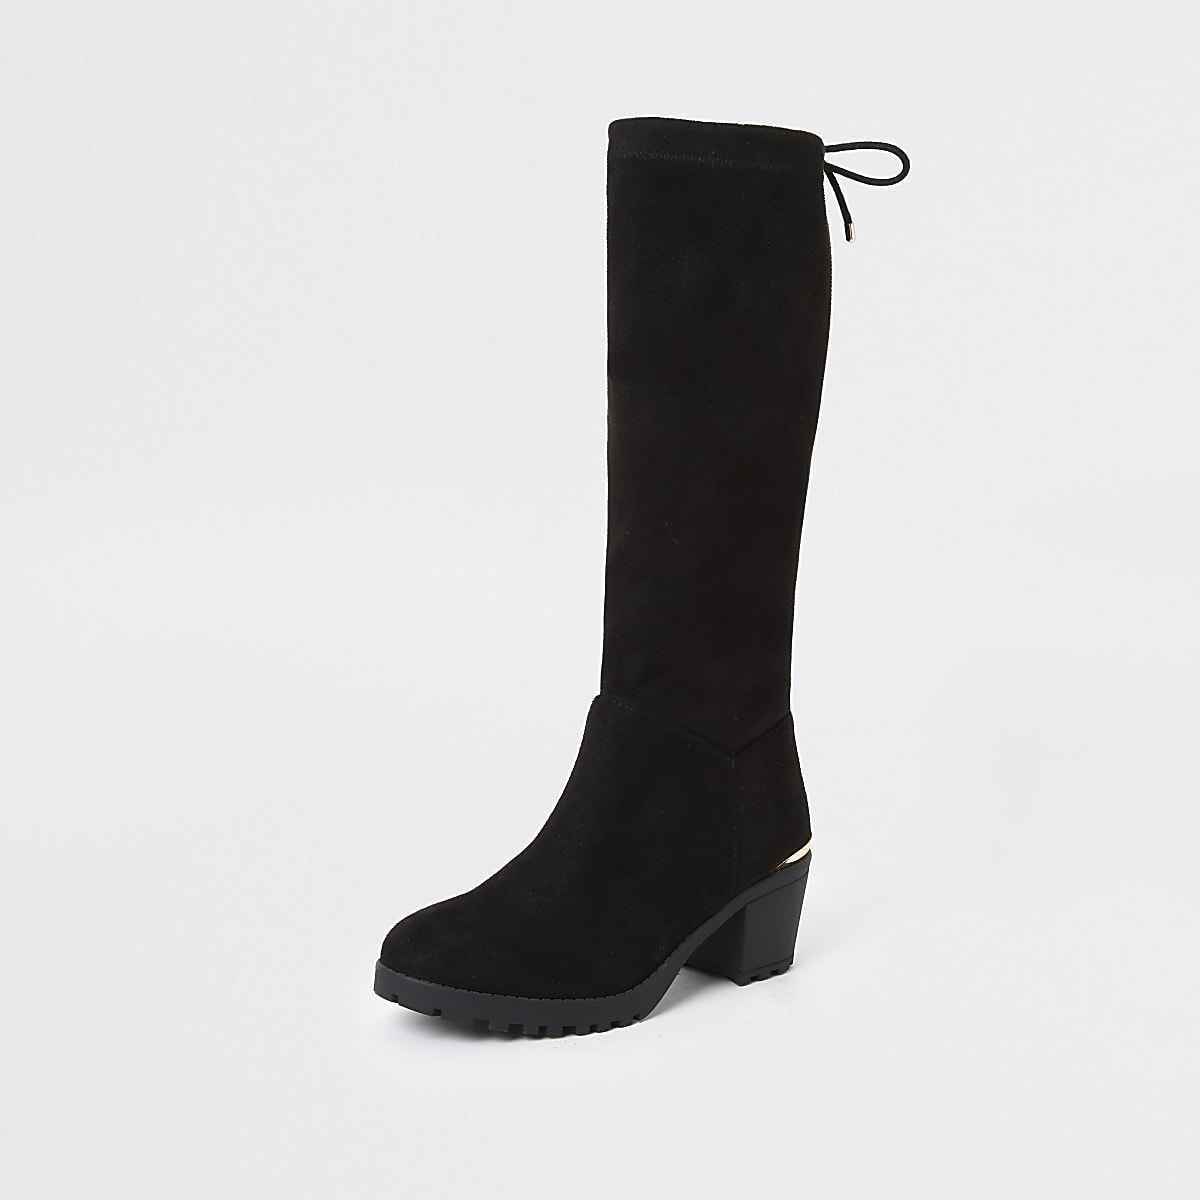 hot-selling authentic outlet store best deals on Girls black knee high boots